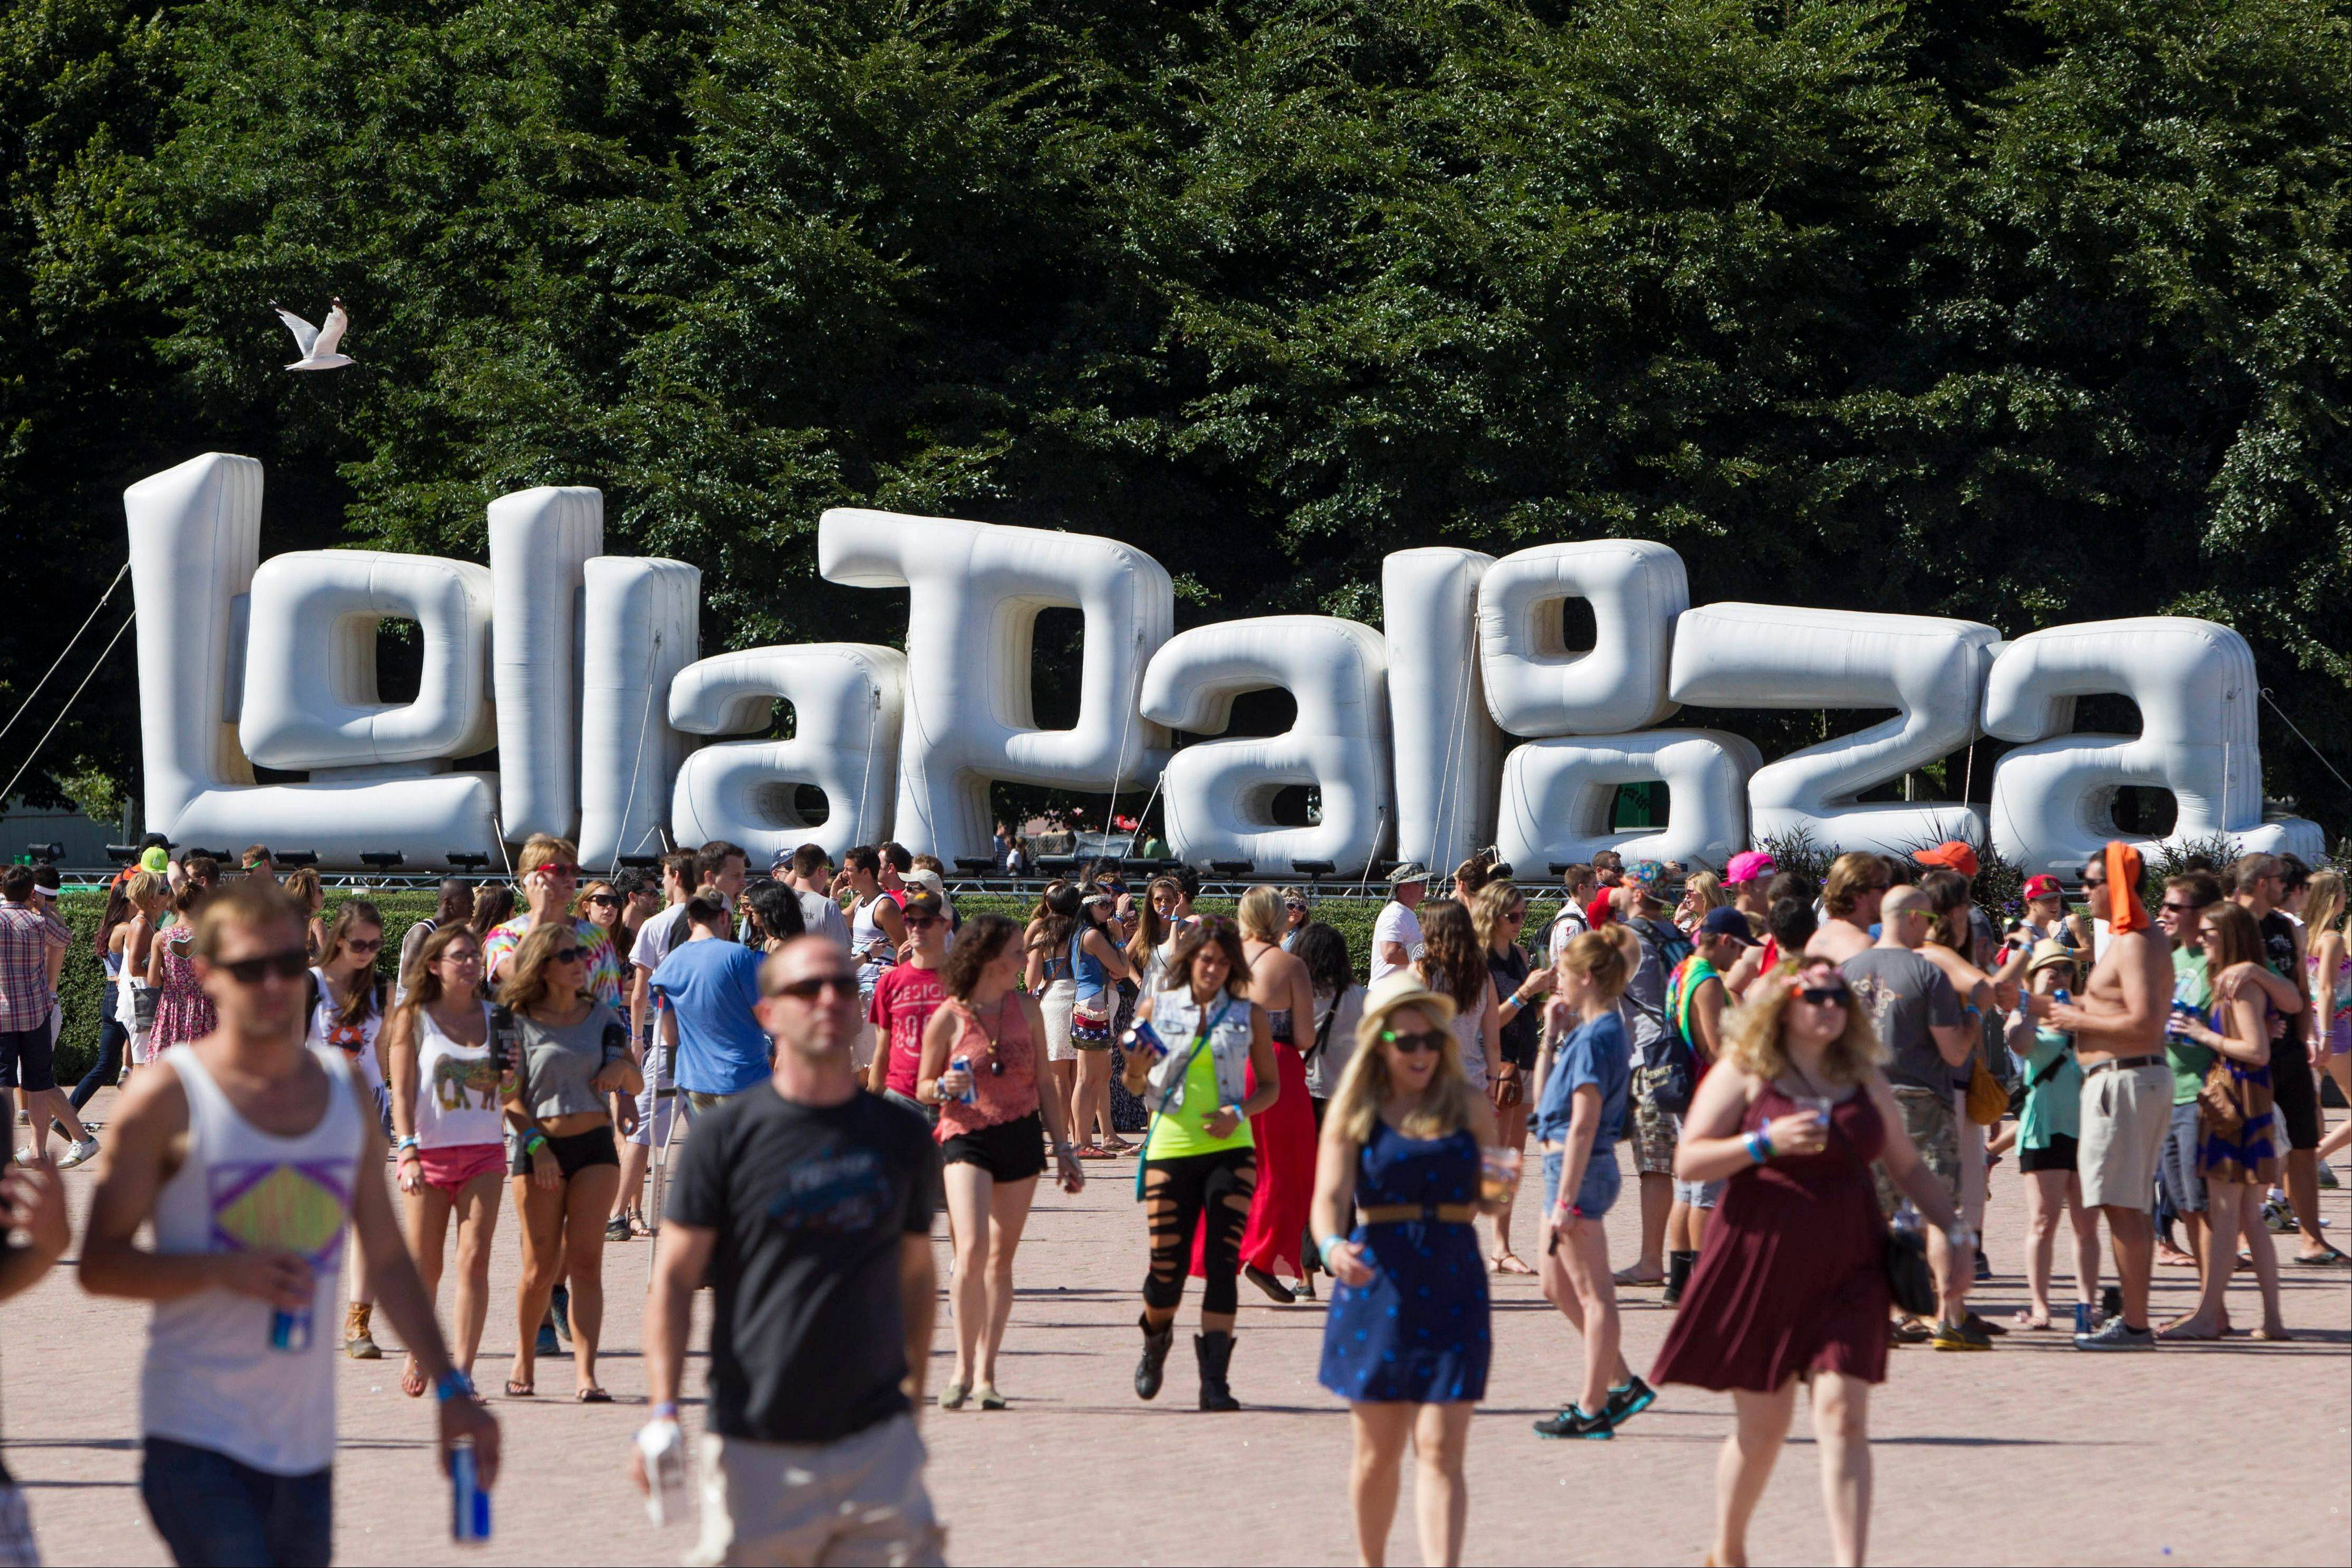 Lollapalooza ran from Aug. 2-4 in Grant Park.